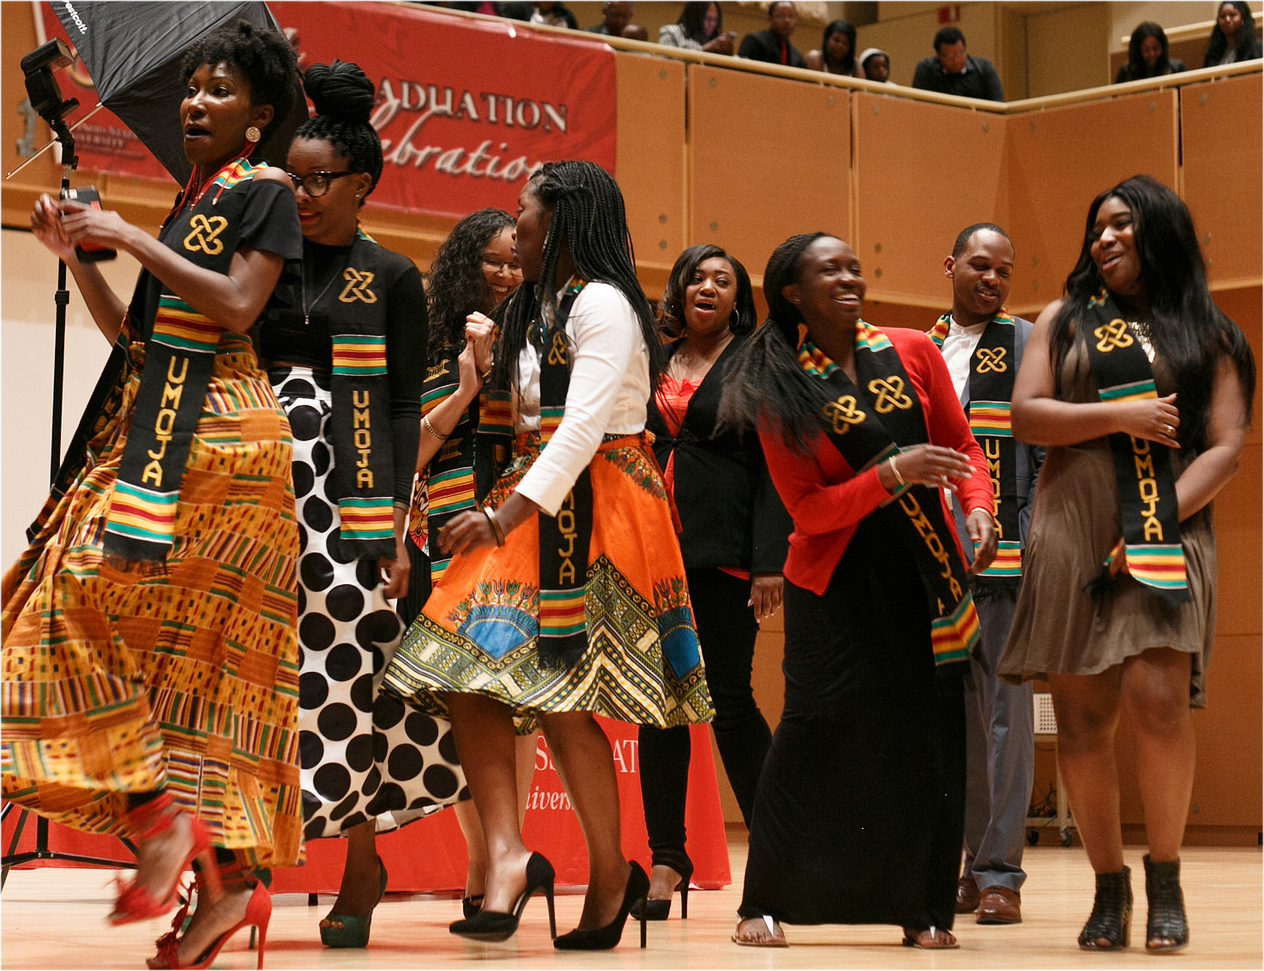 graduates dancing on stage as part of the Umoja celebration